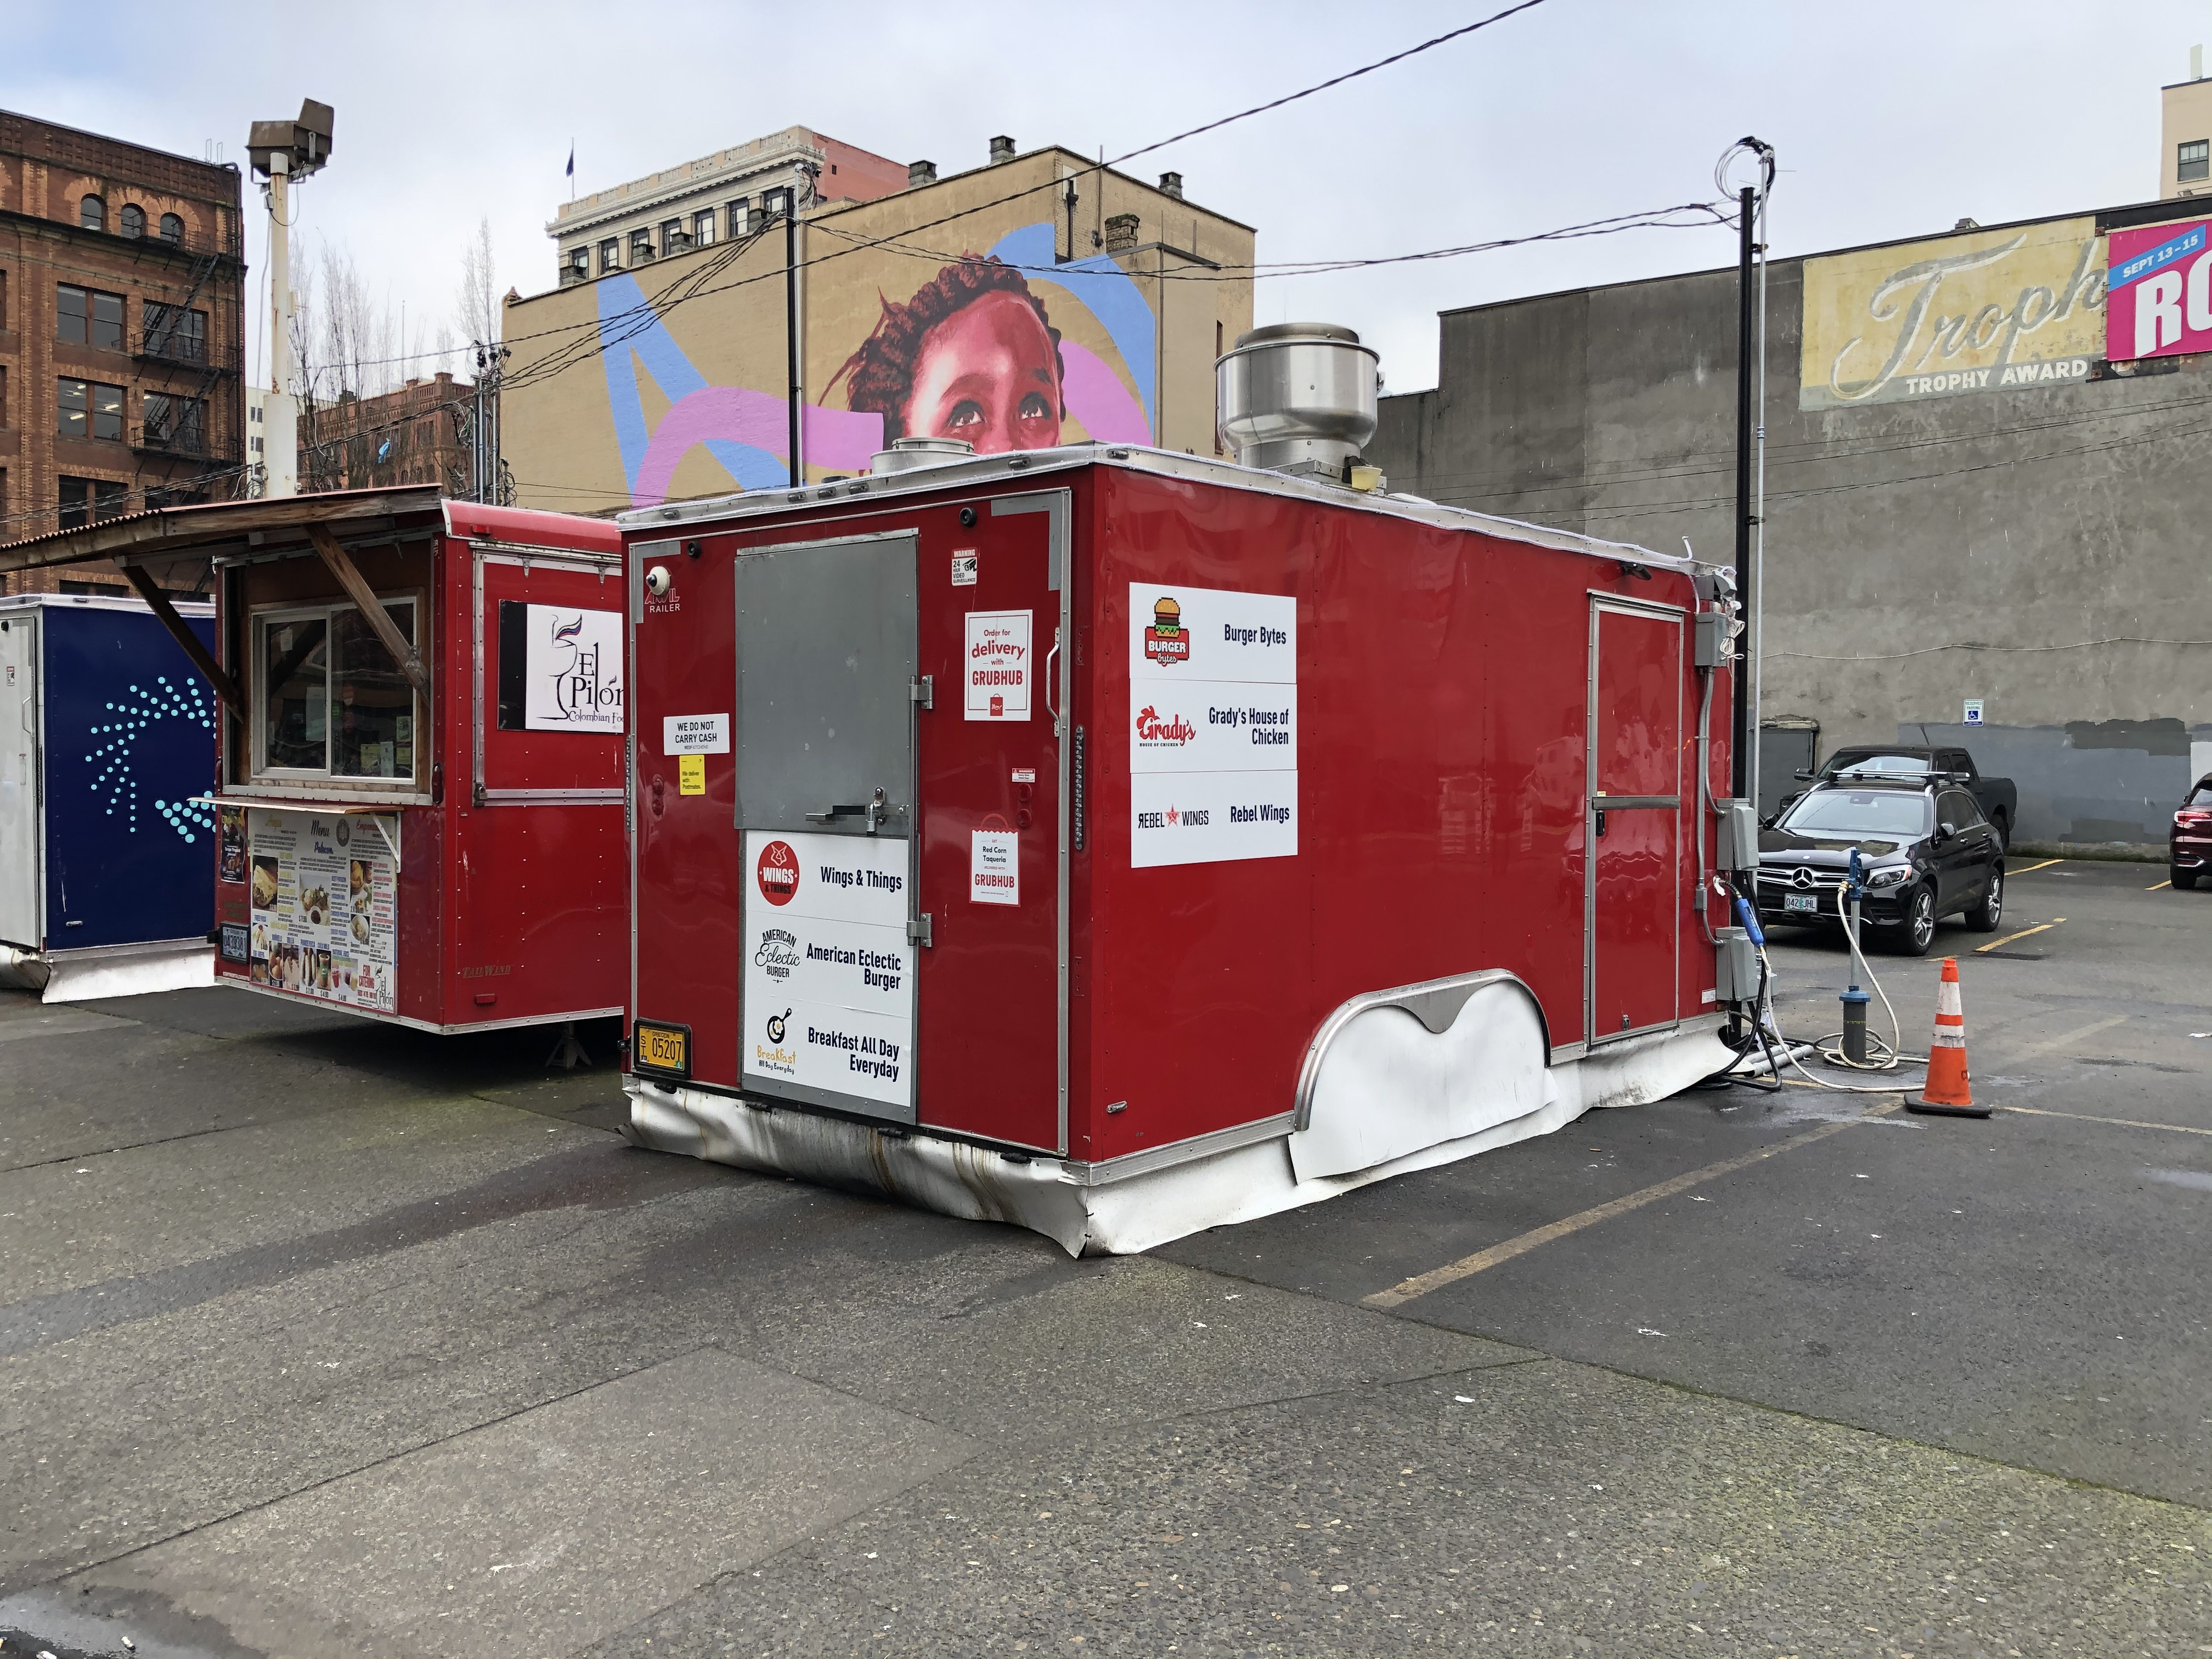 Timing Of Celebrity Chef S Fried Chicken Expansion In Portland Draws Criticism Oregonlive Com